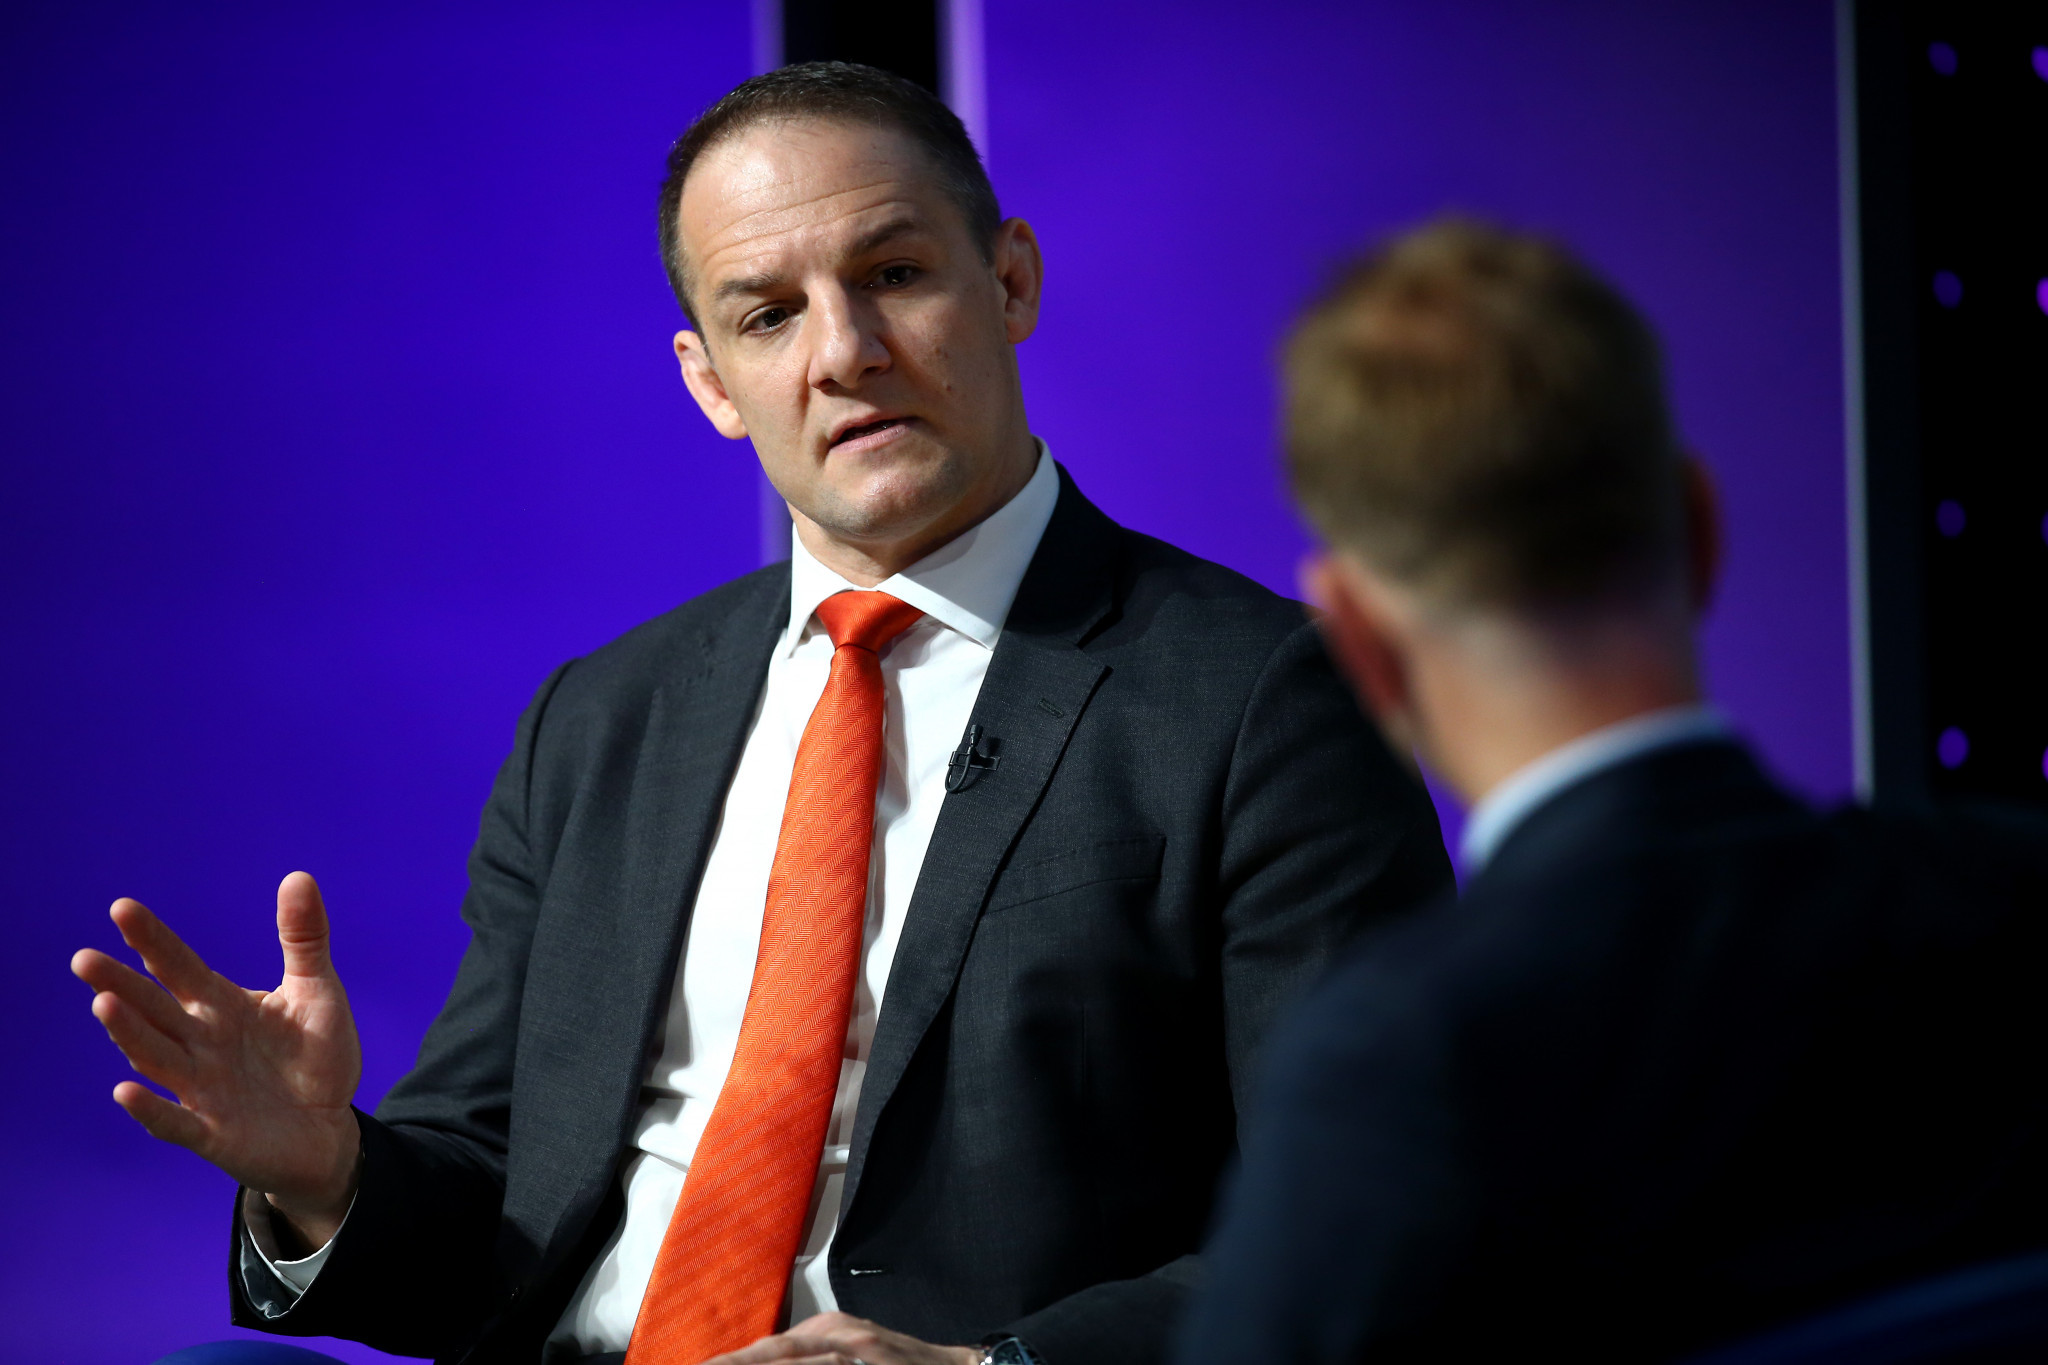 CGF chief executive David Grevemberg is in favour of athletes showing their support to causes such as the Black Lives Matter movement ©Getty Images